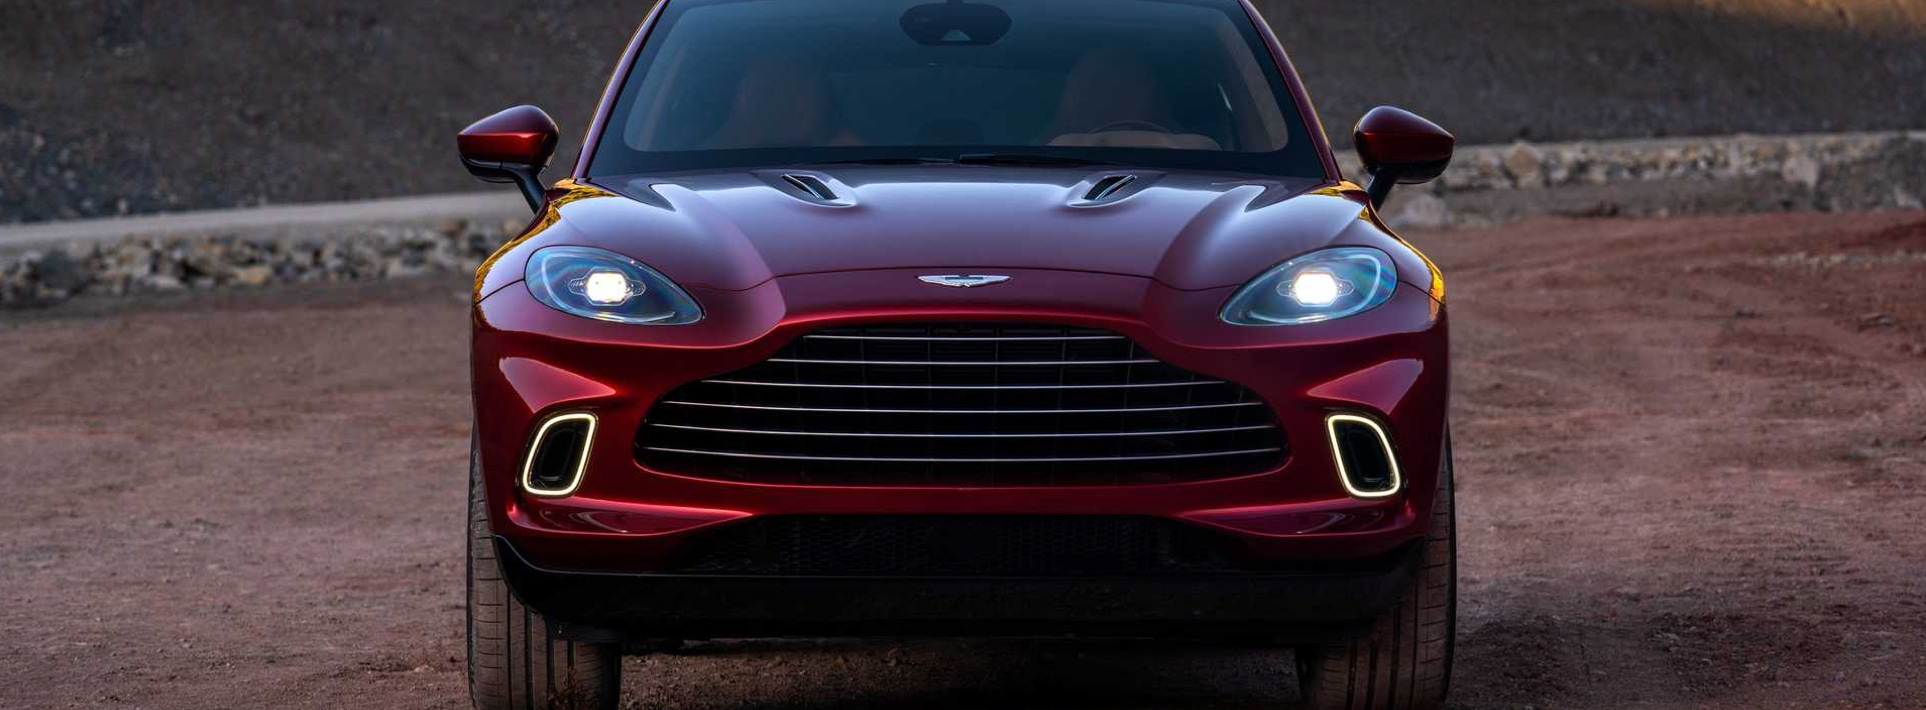 Aston Martin's post-lockdown debut of their first ever SUV proves the ride was worth the wait